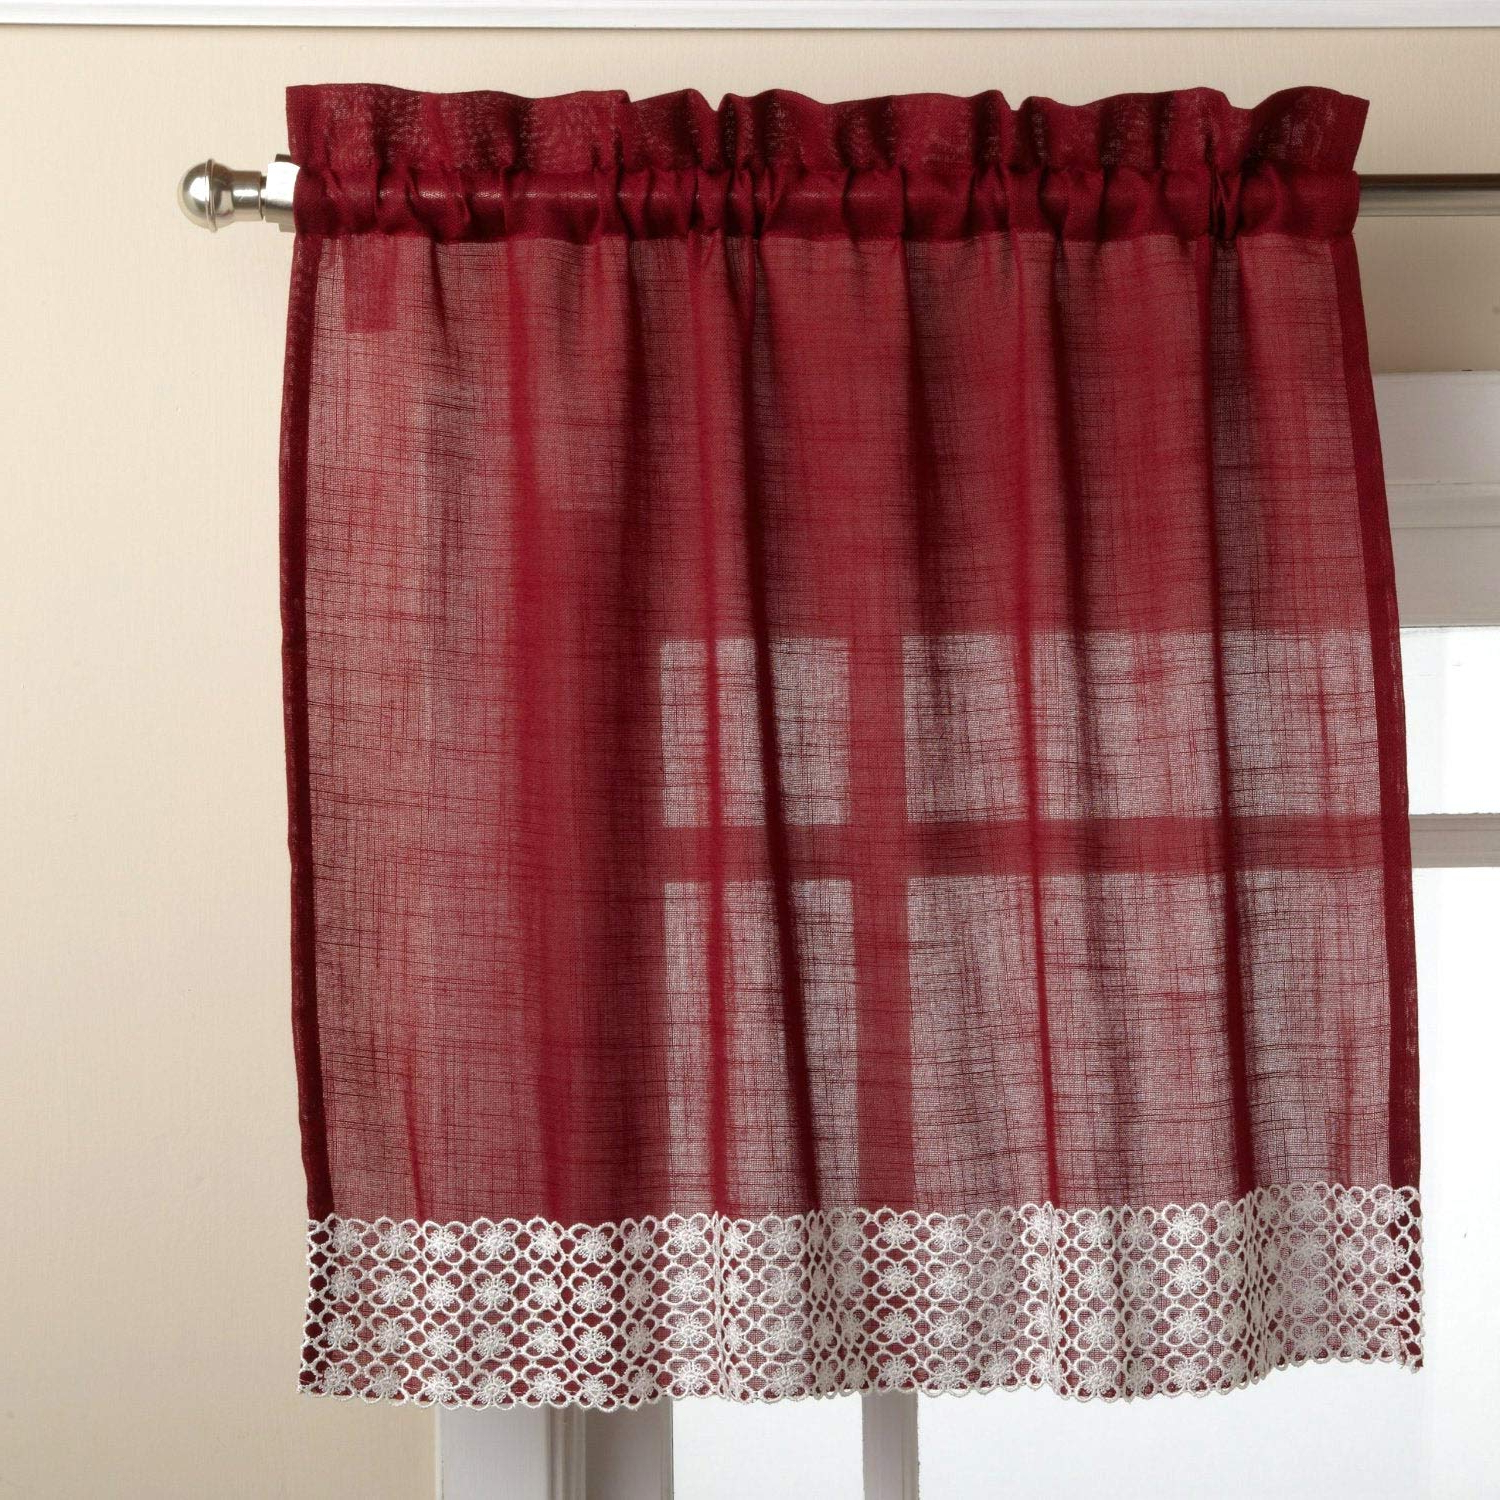 Favorite Country Style Curtain Parts With White Daisy Lace Accent Throughout Amazon: Bed Bath N More Burgundy Country Style Kitchen (Gallery 5 of 20)